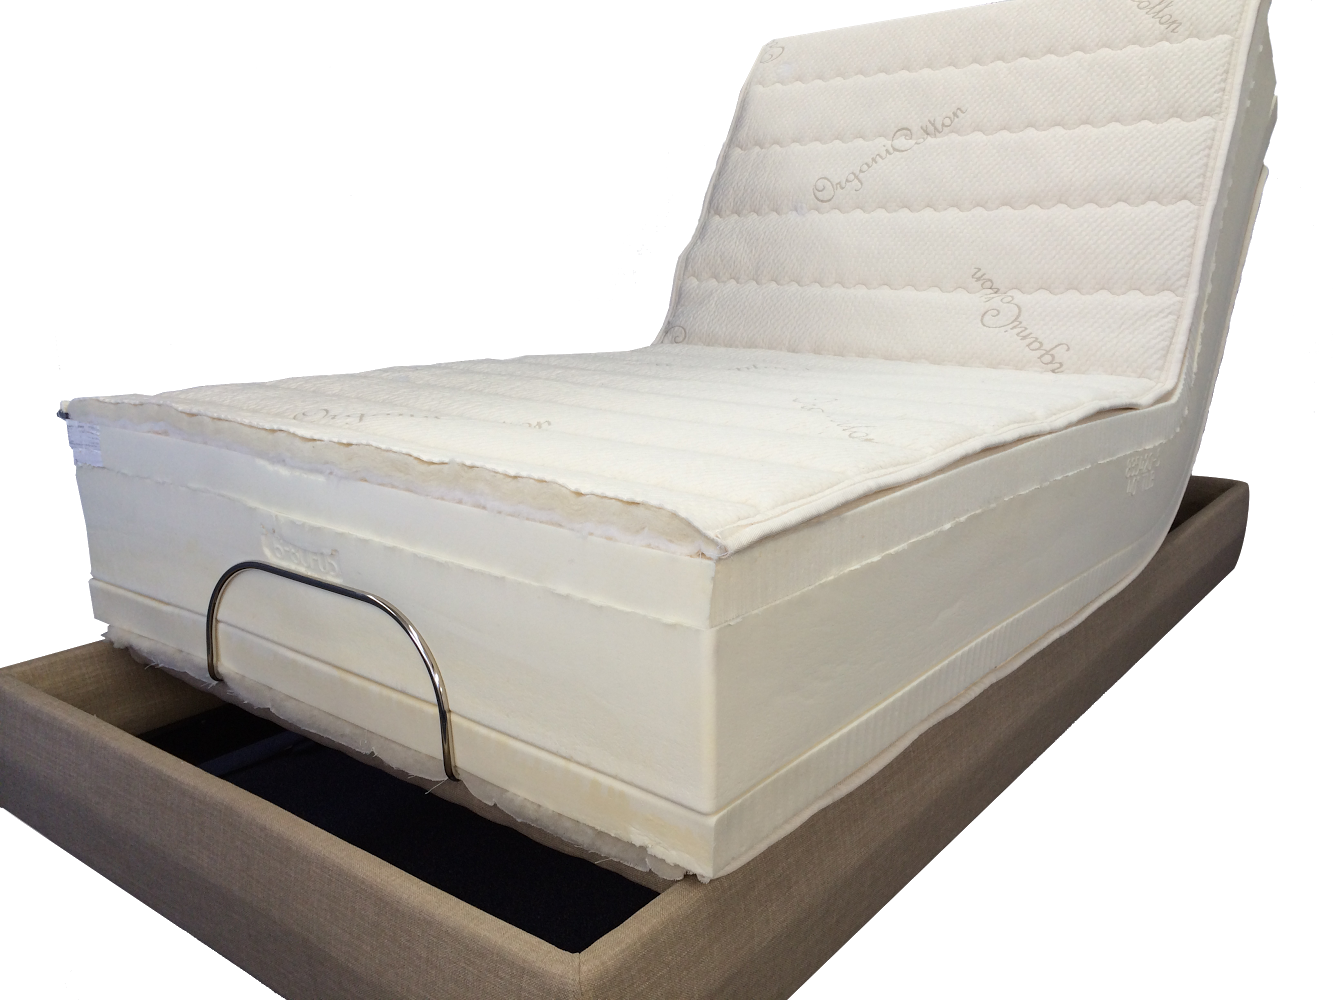 Ratings Reviews Theultimate Latex Mattress Houston Tx. Acne Scars Signs. Playground Signs. River Signs. Behaviour Management Signs. Perforated Bowel Signs Of Stroke. Used Hotel Signs. Pancoast Syndrome Signs. Diamond Signs